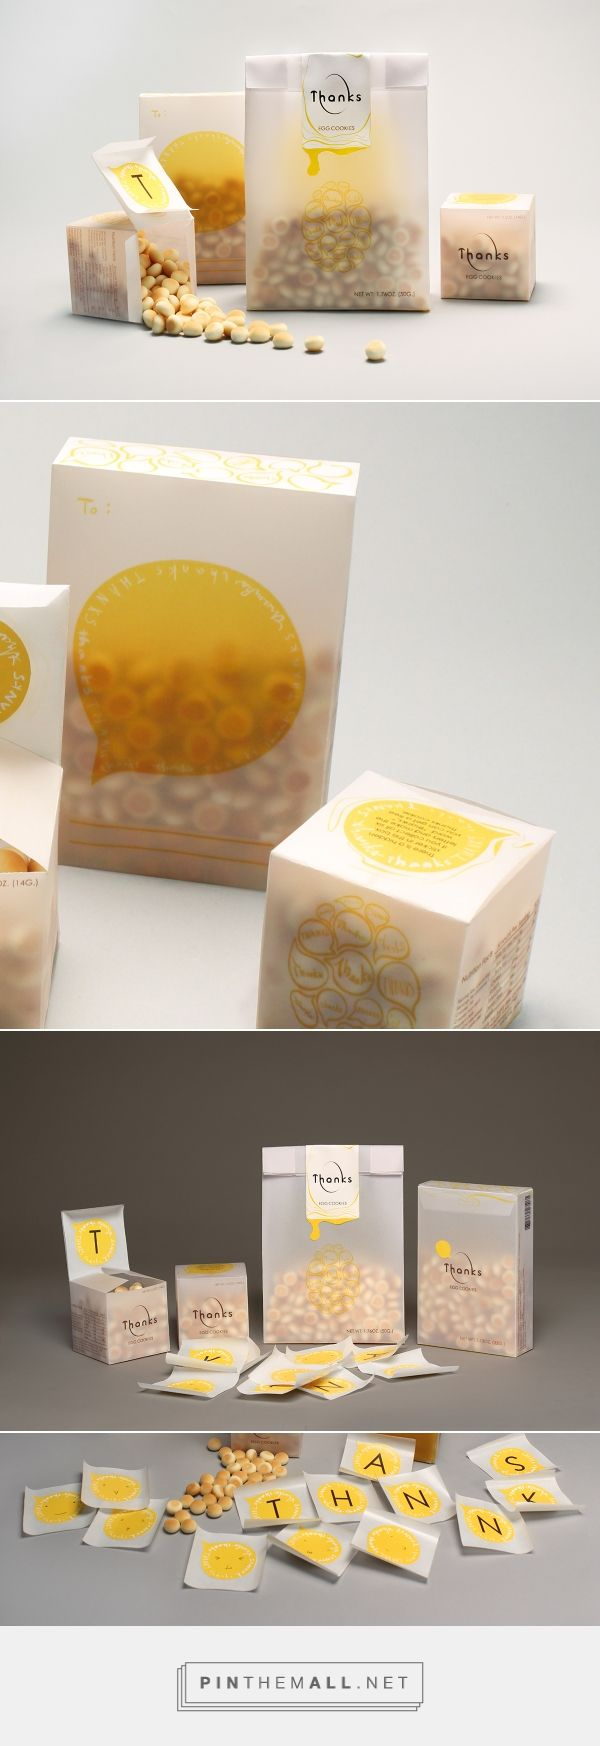 best packaging images on pinterest